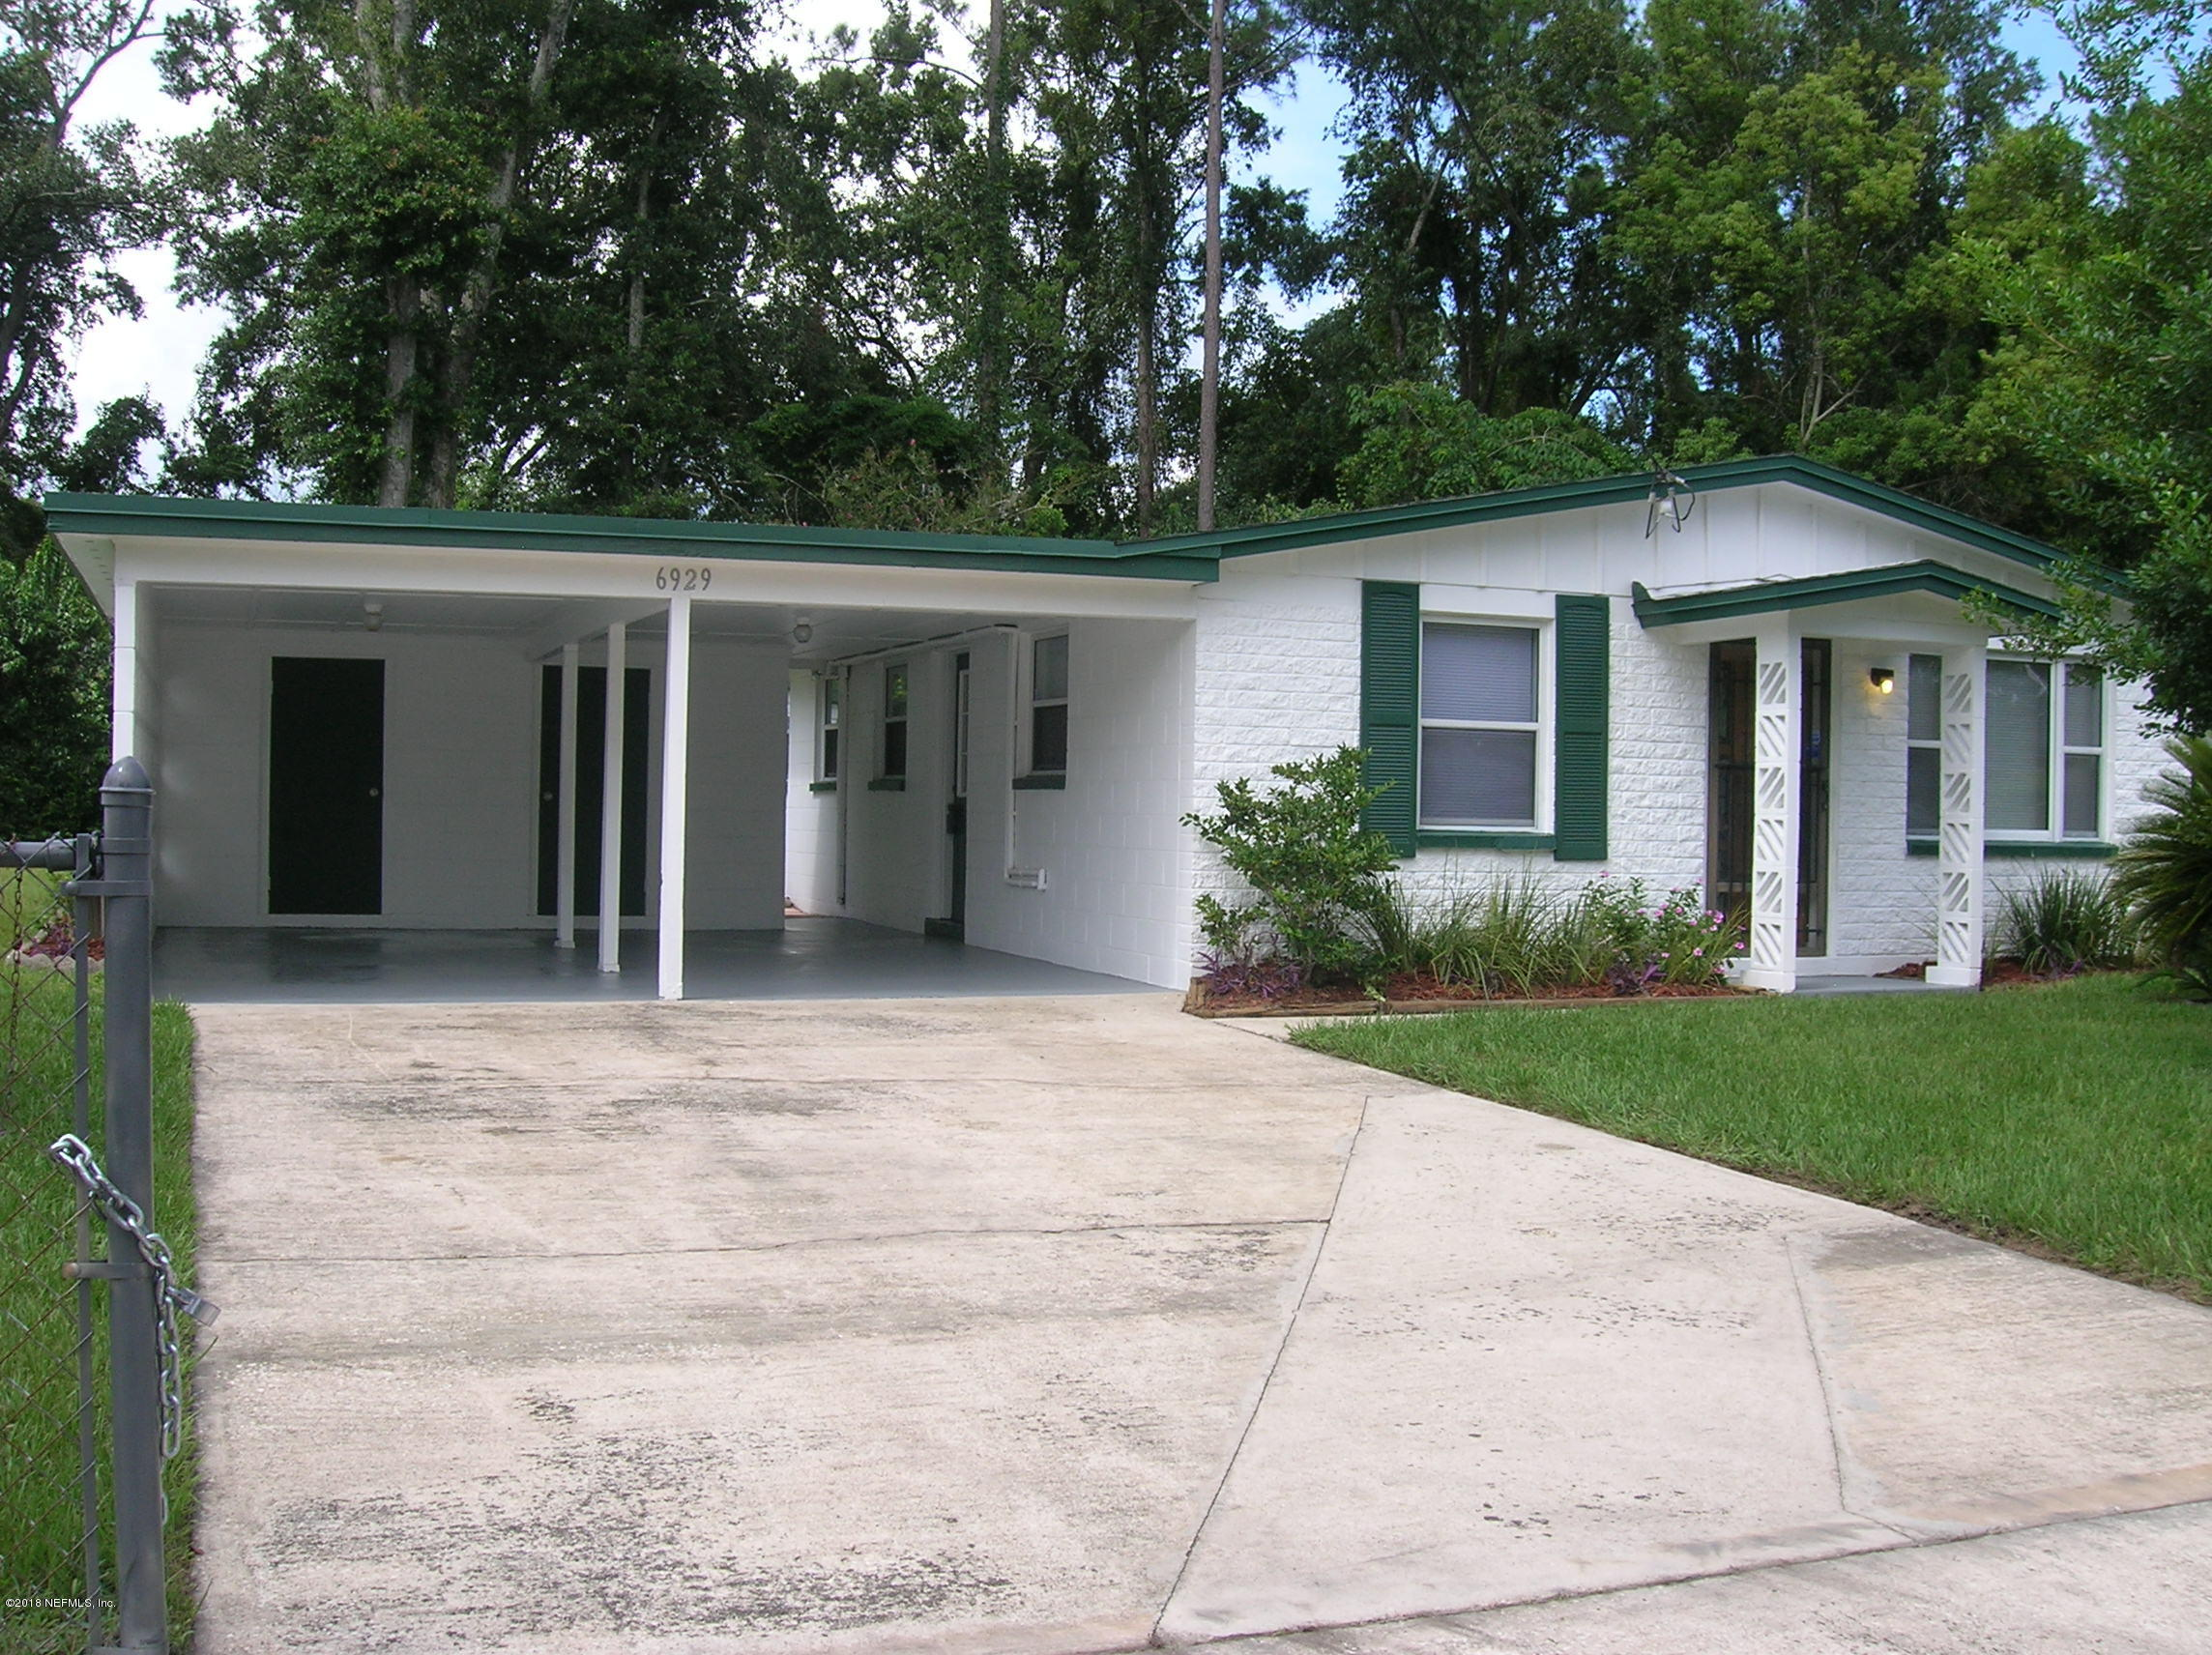 6929 SONORA, JACKSONVILLE, FLORIDA 32244, 3 Bedrooms Bedrooms, ,1 BathroomBathrooms,Residential - single family,For sale,SONORA,953305